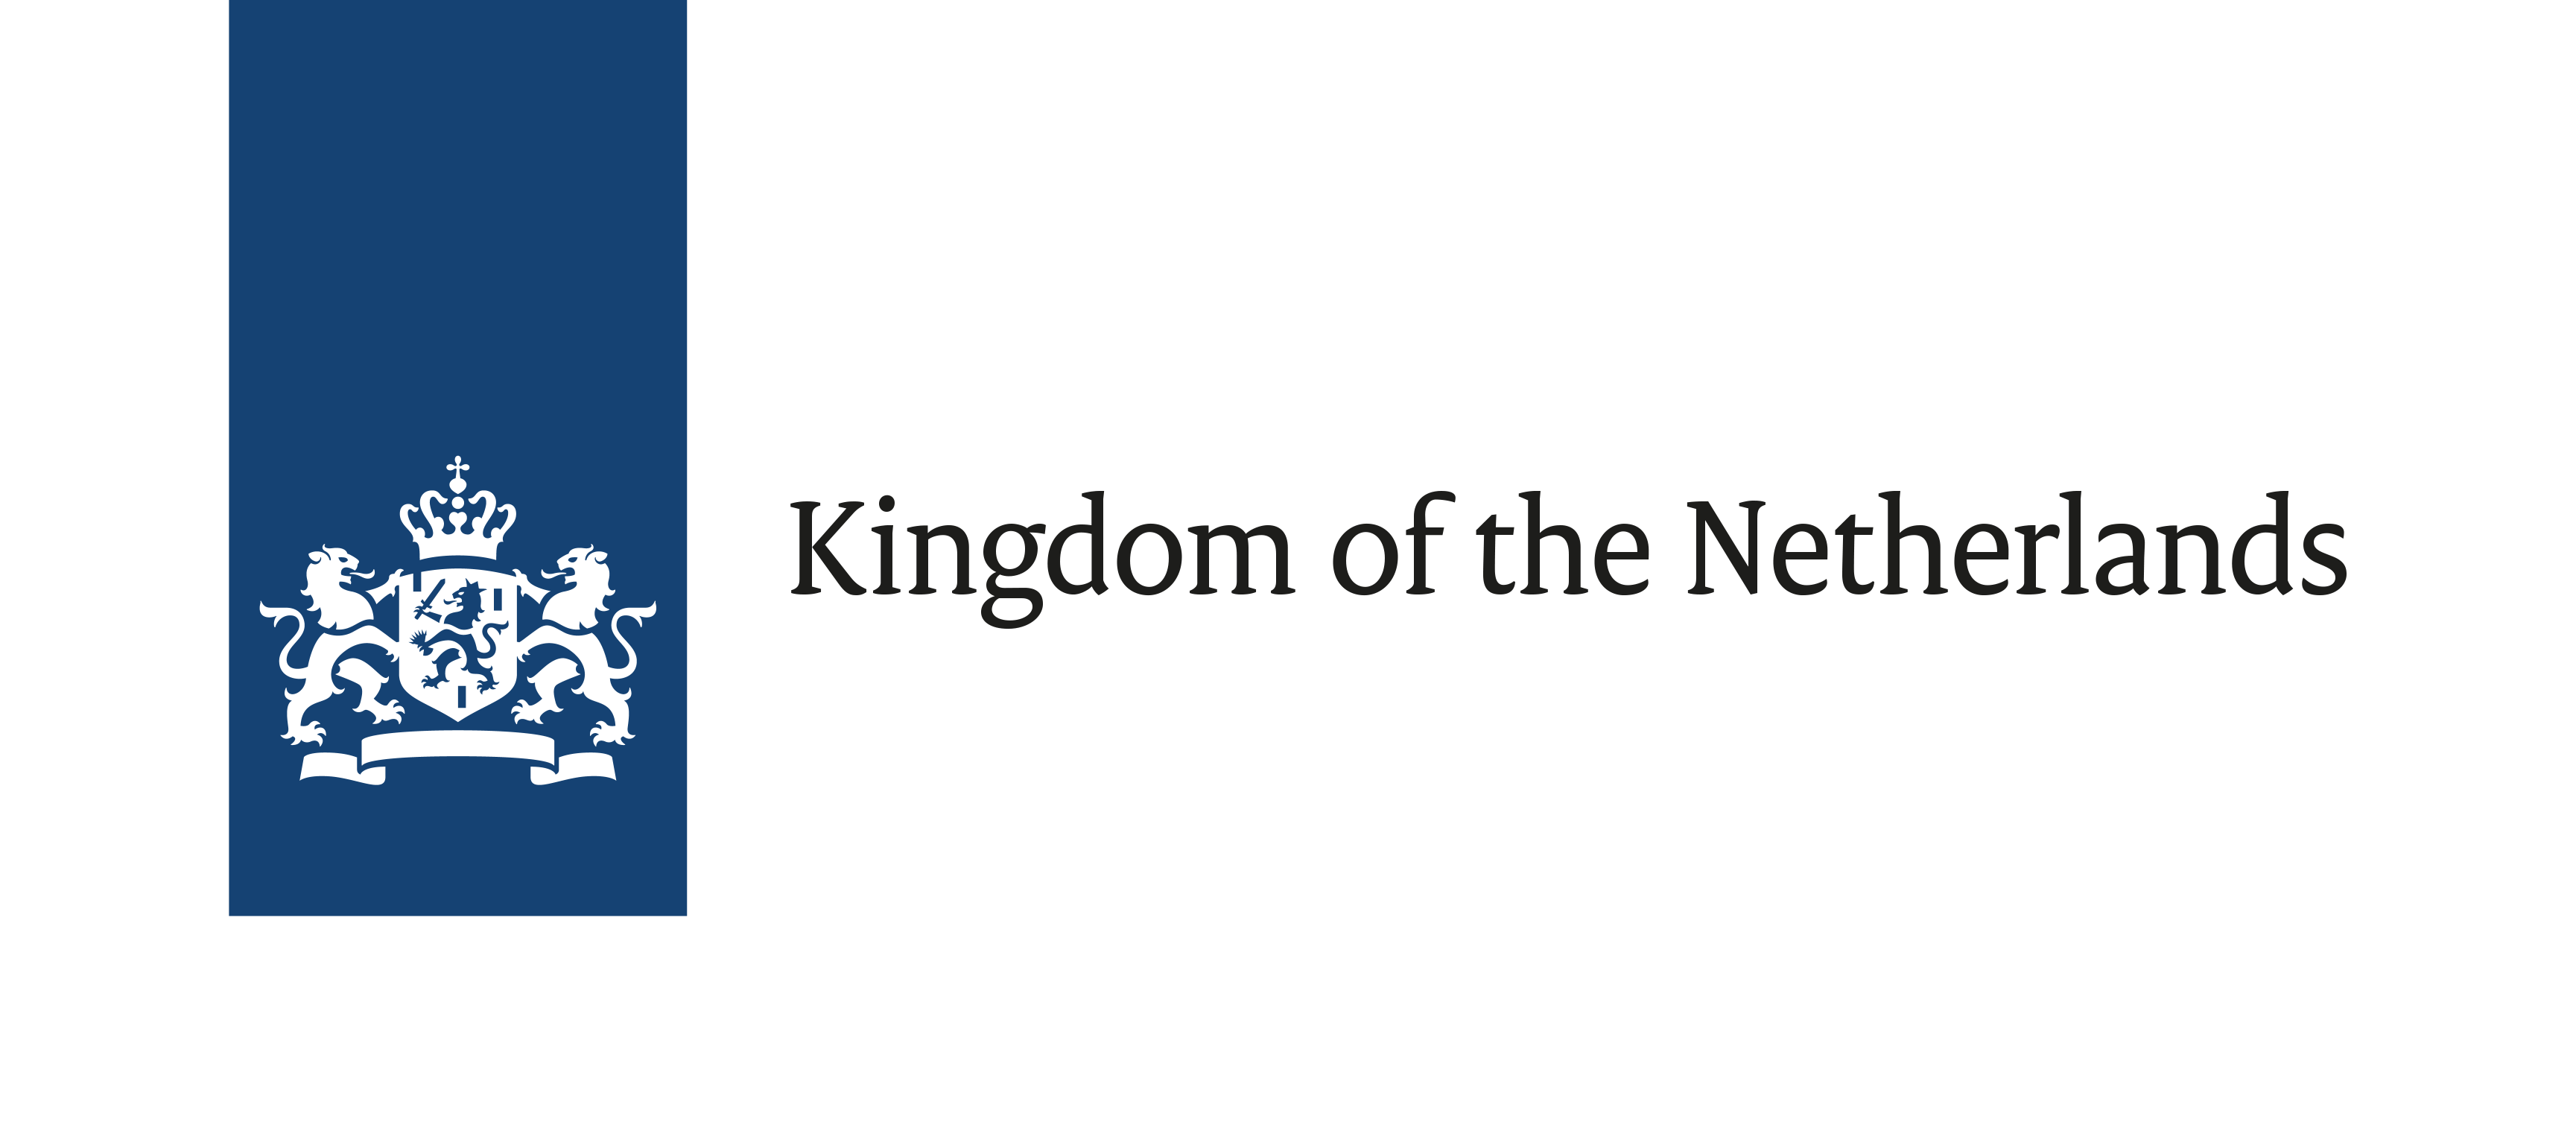 Embassy of the Kingdom of the Netherlands logo